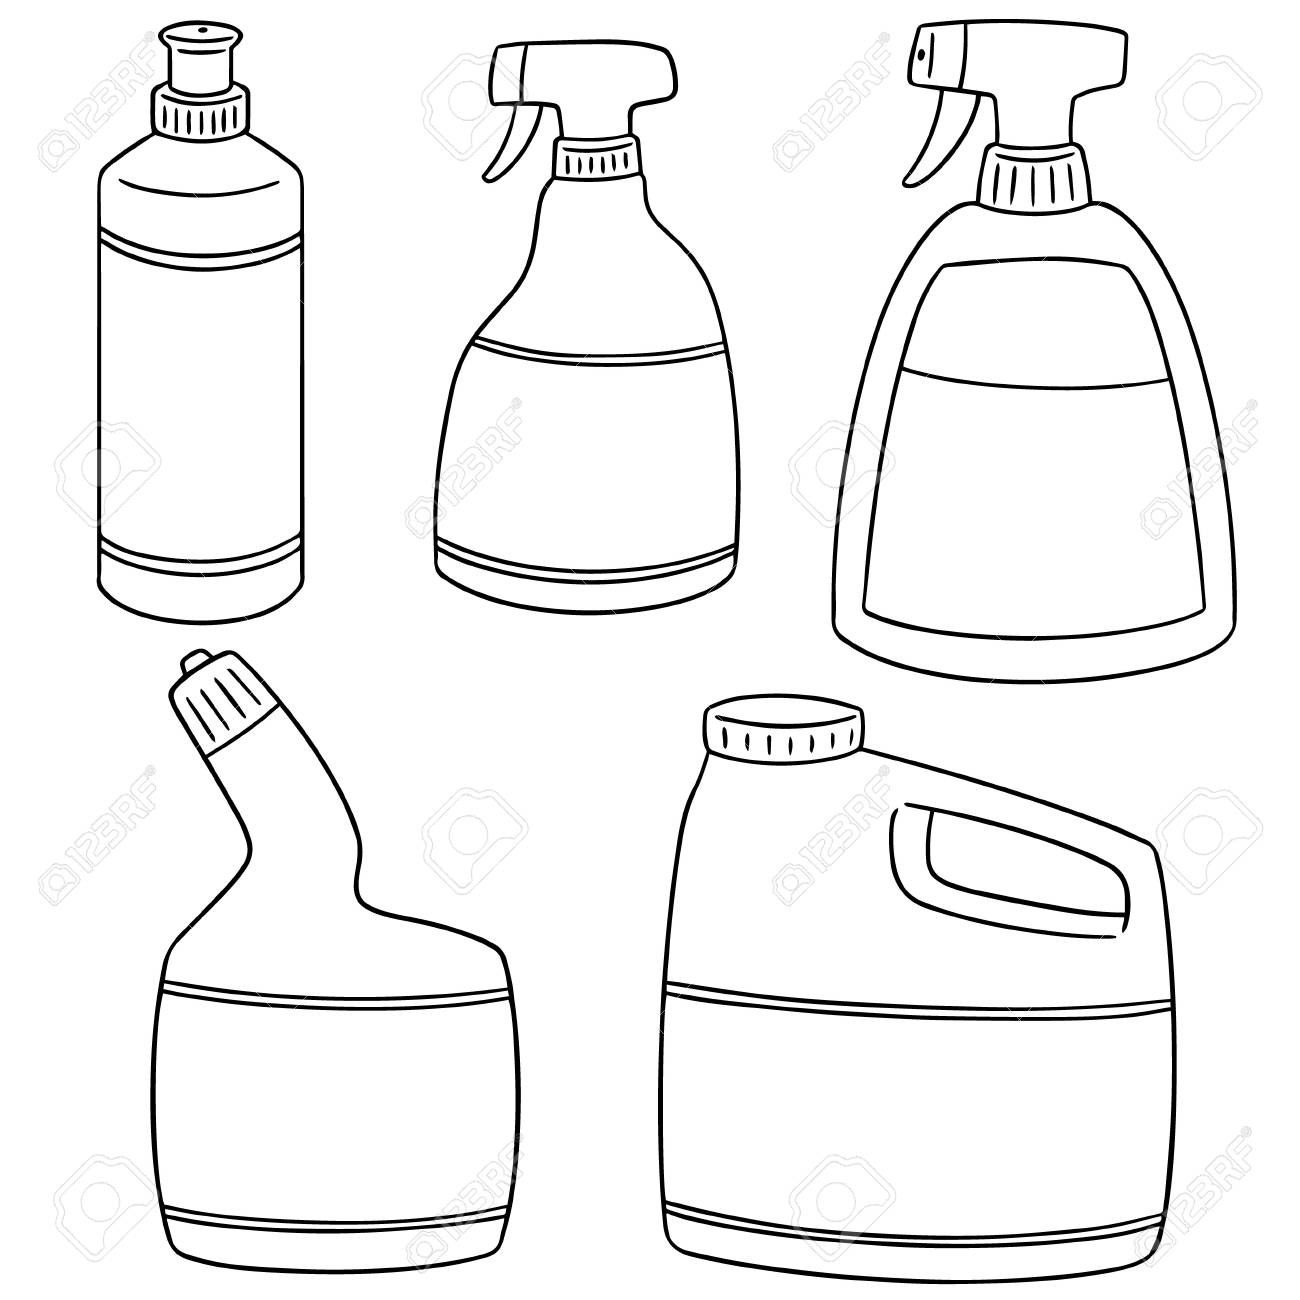 Set Of Bathroom Cleaning Solution Icon Royalty Free Cliparts - Bathroom cleaning solution